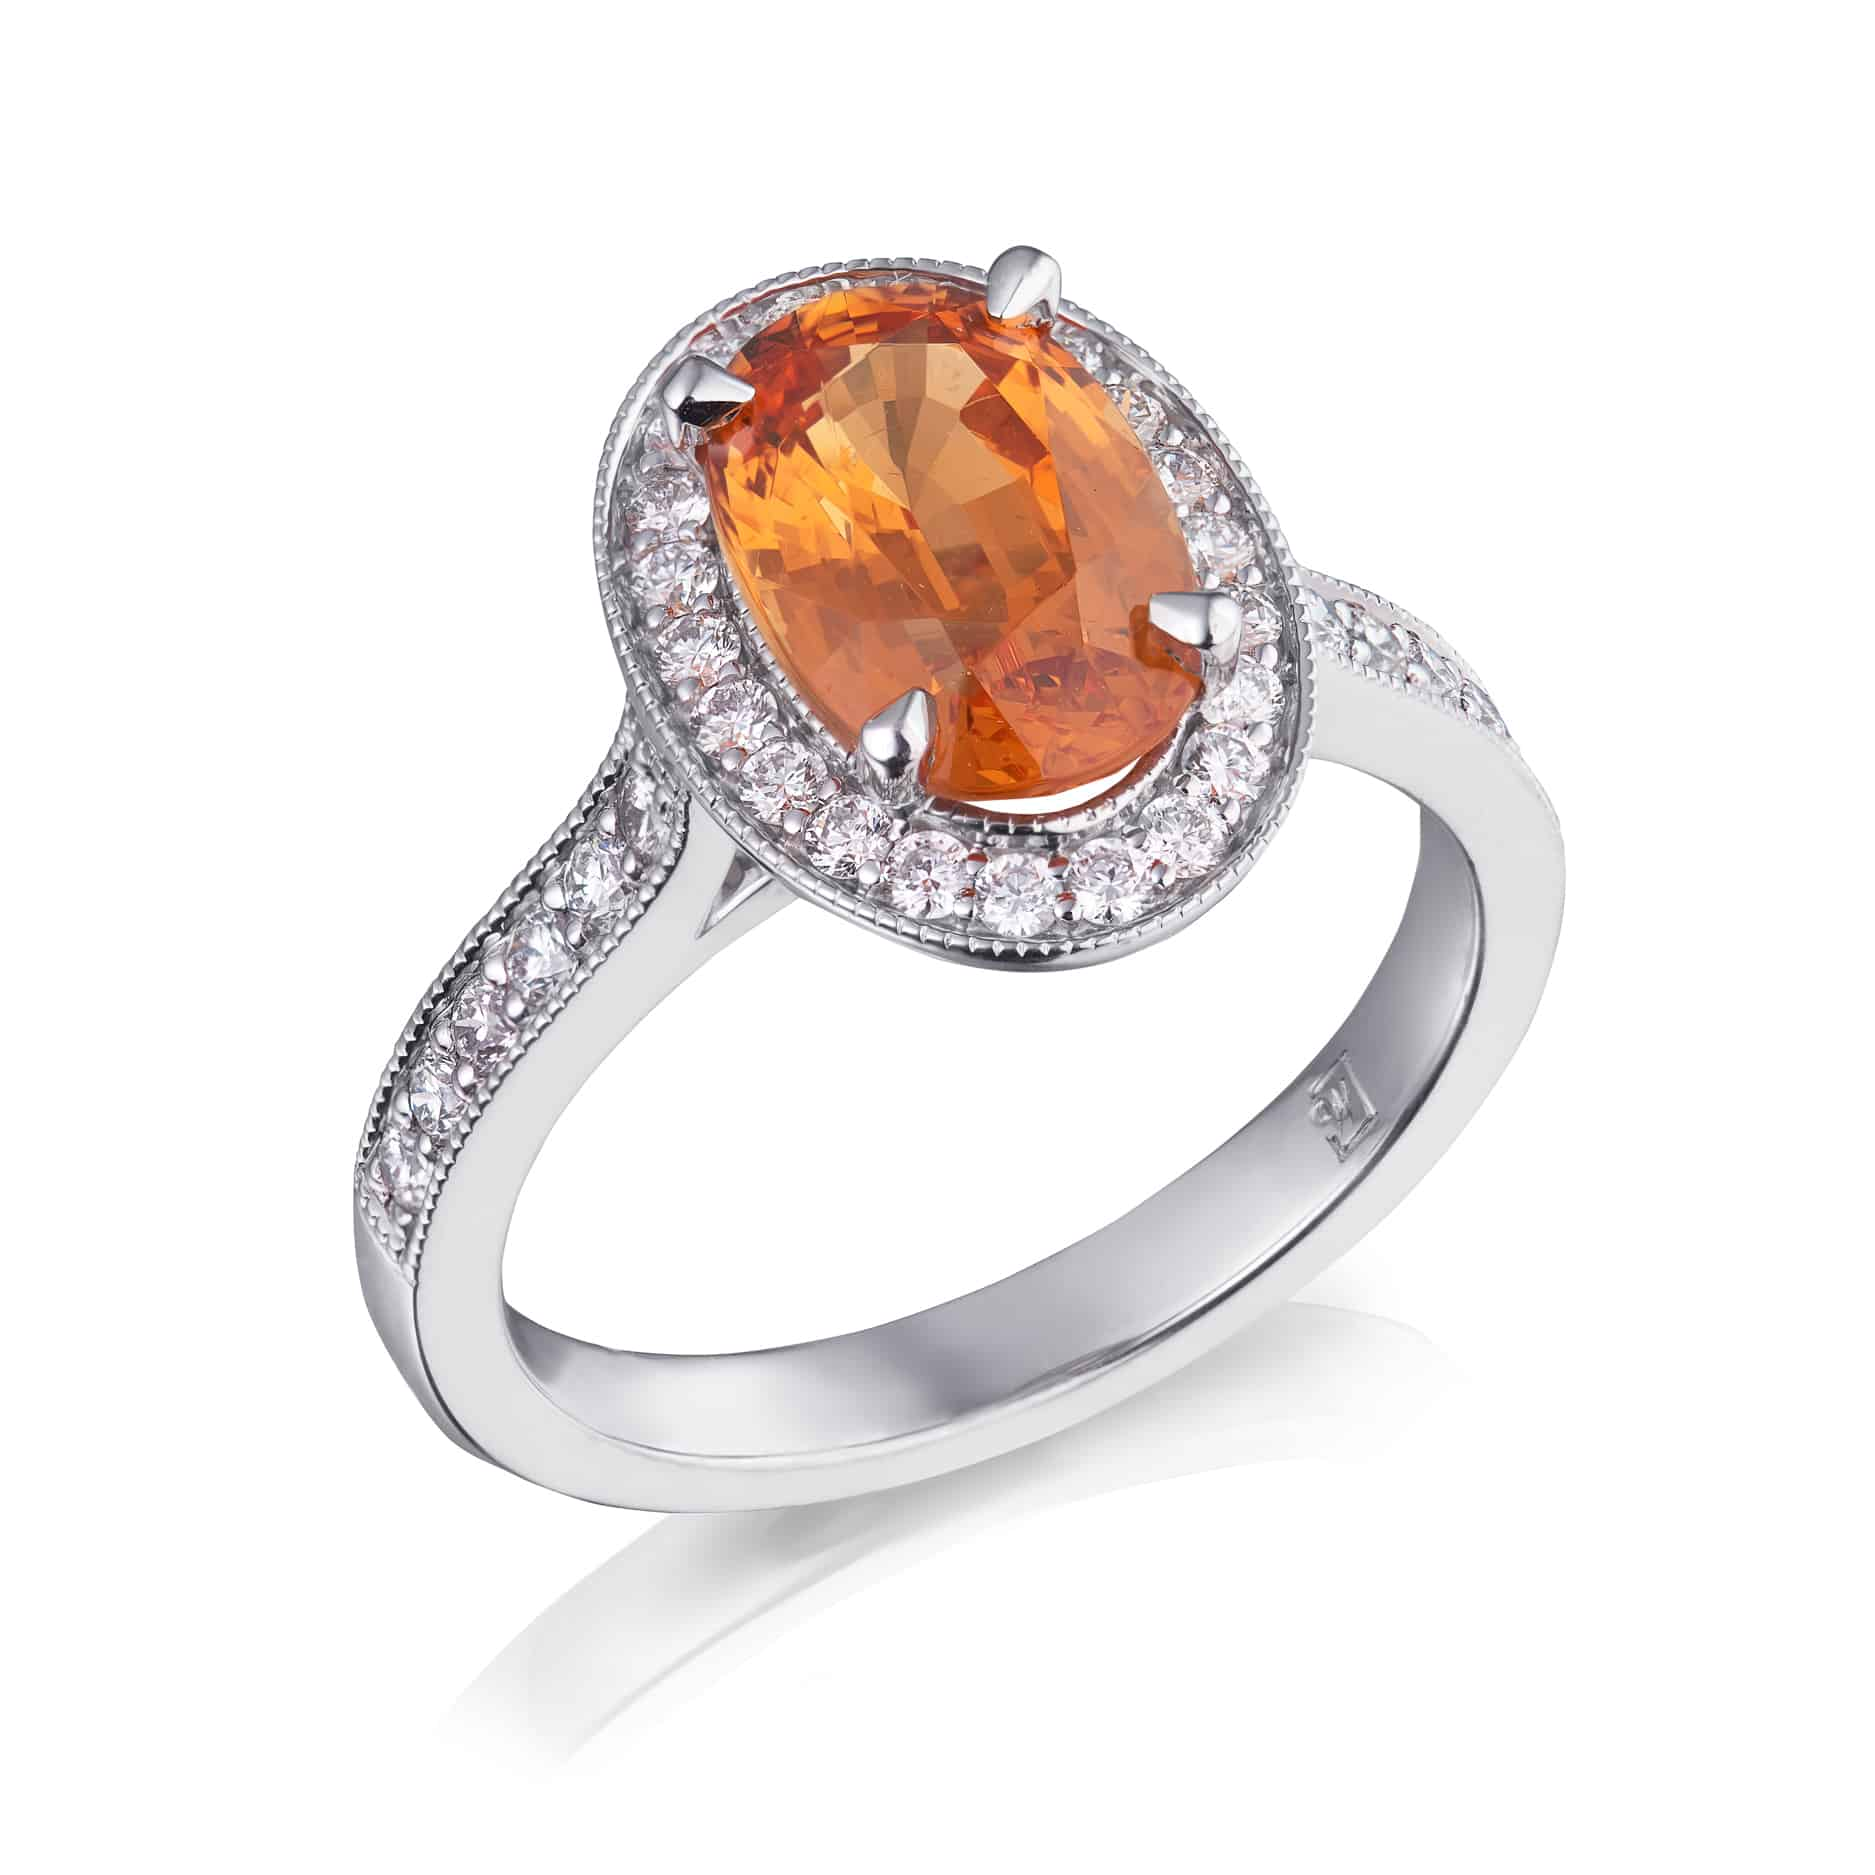 Oval Mandarin Spessartite Garnet & Diamond Halo Ring